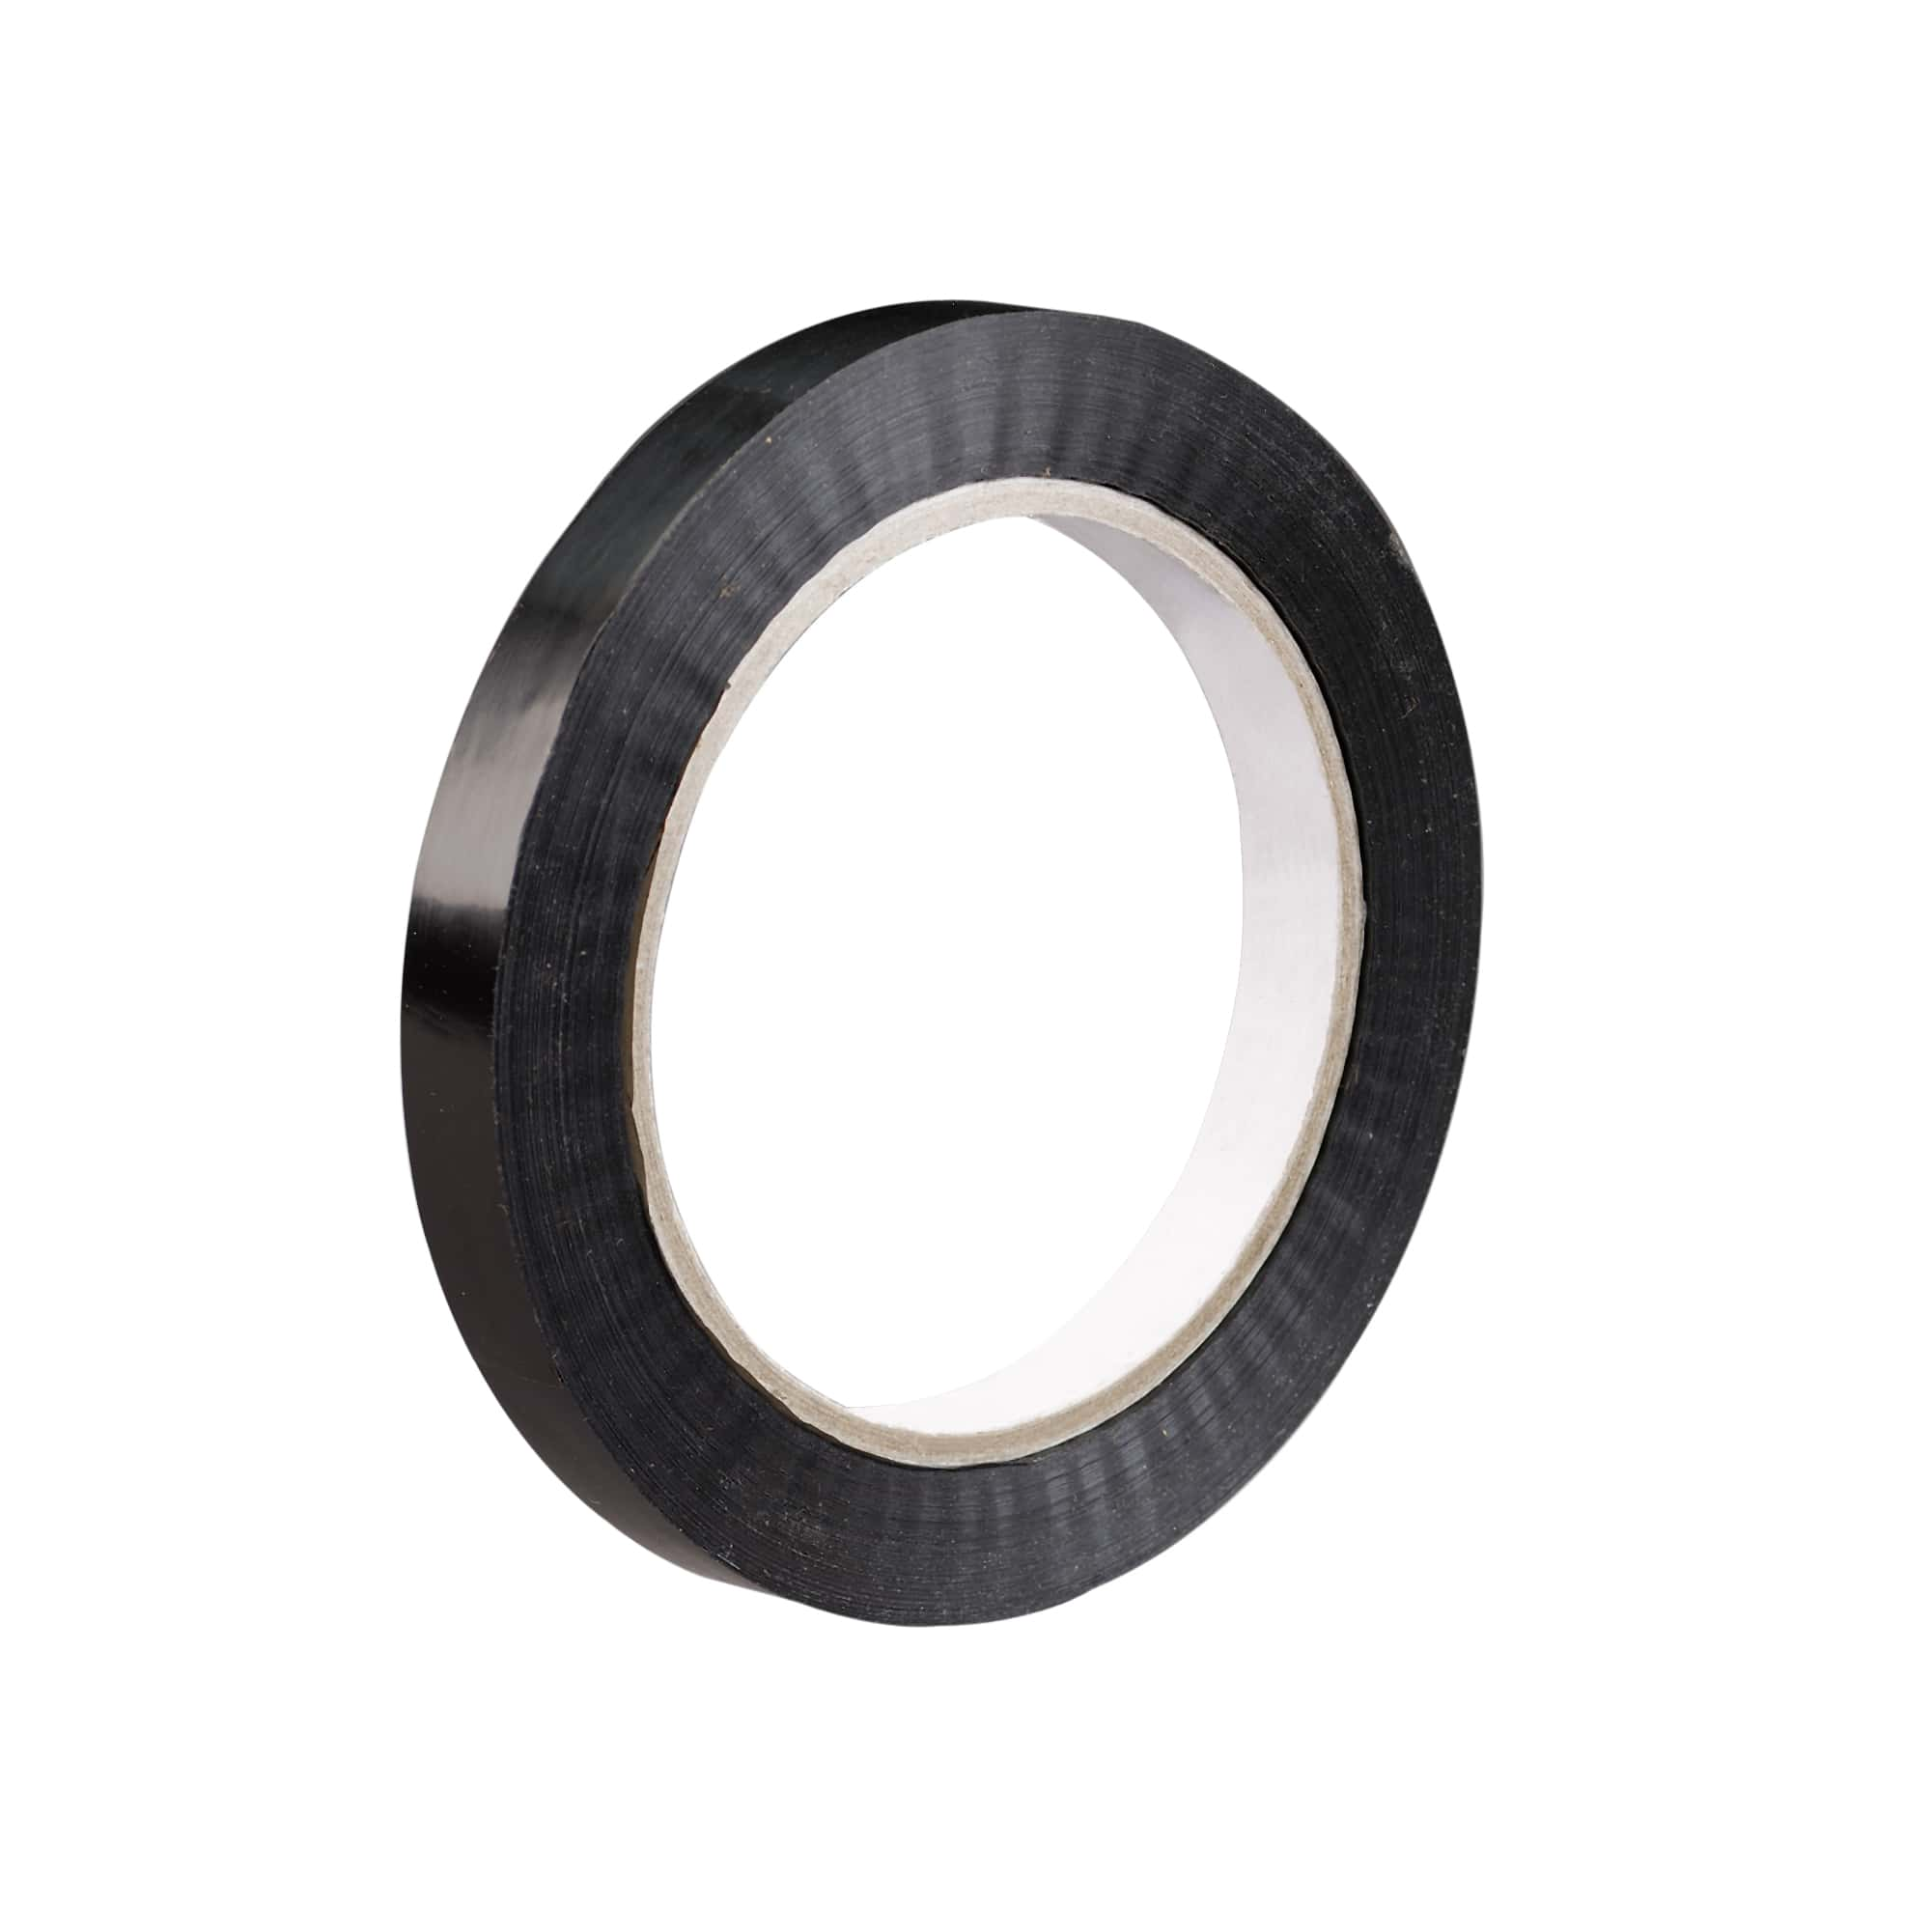 Tensilized Strapping Tape Category Image